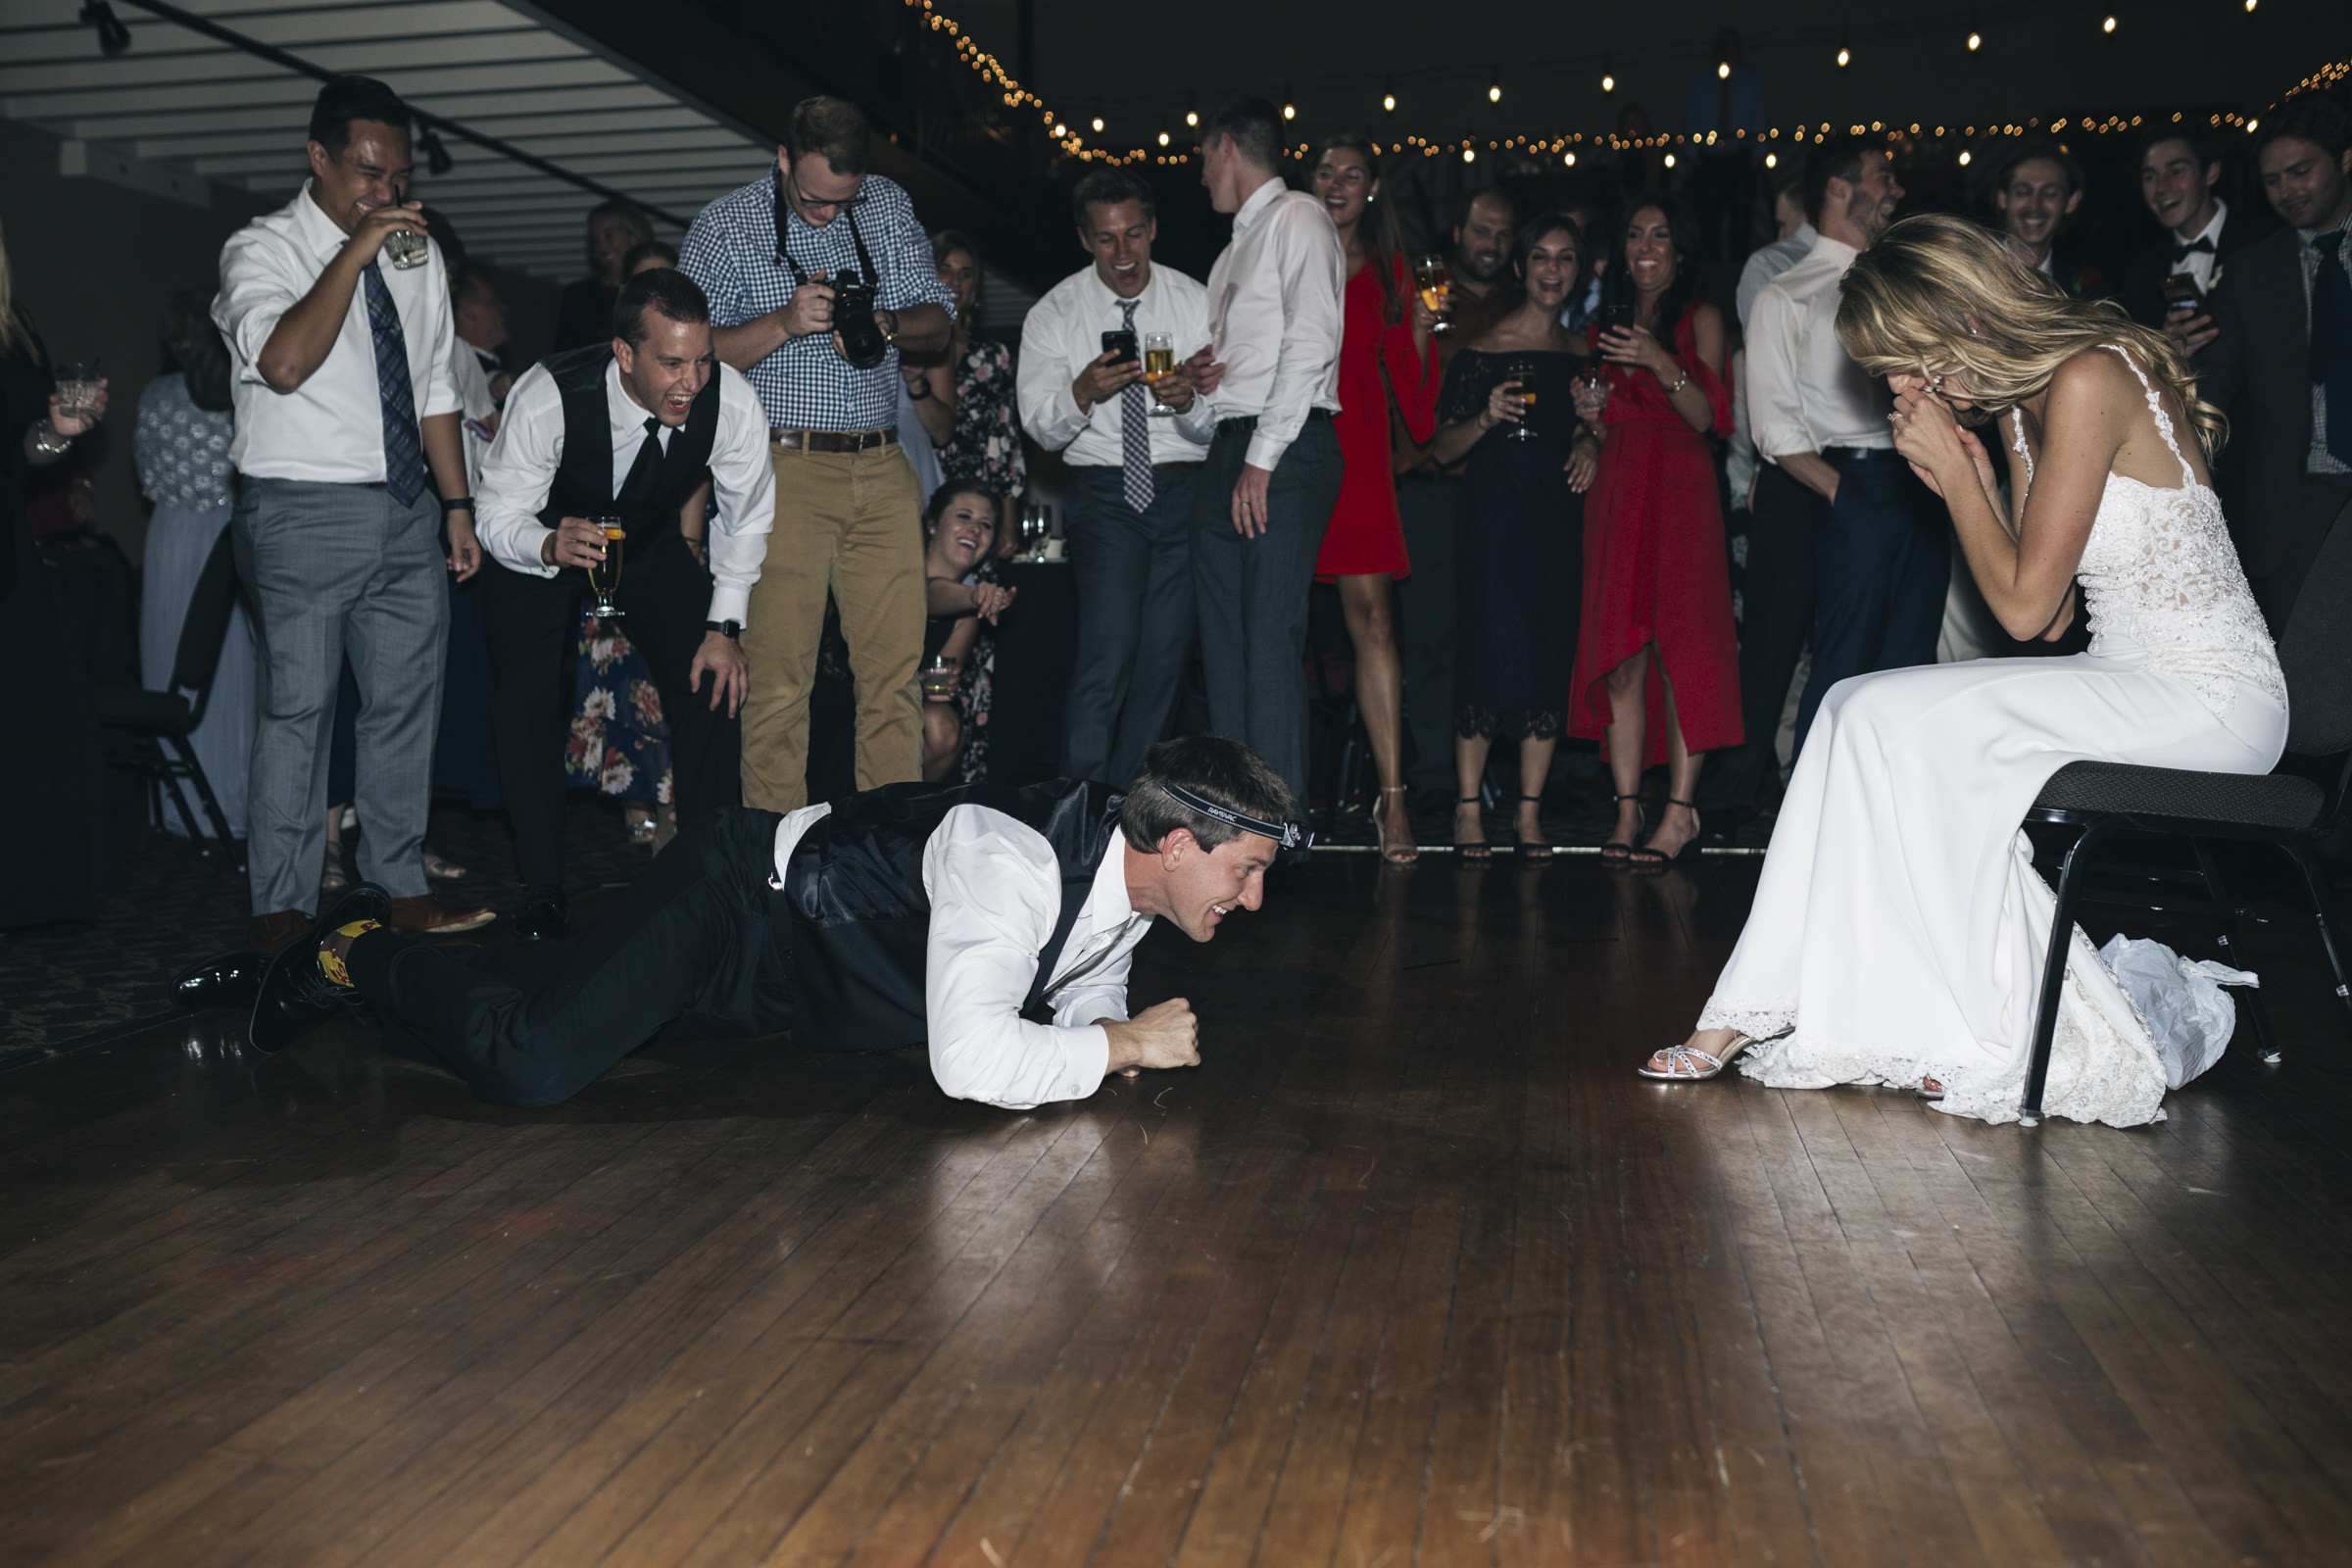 The groom hunts for the garter during wedding reception